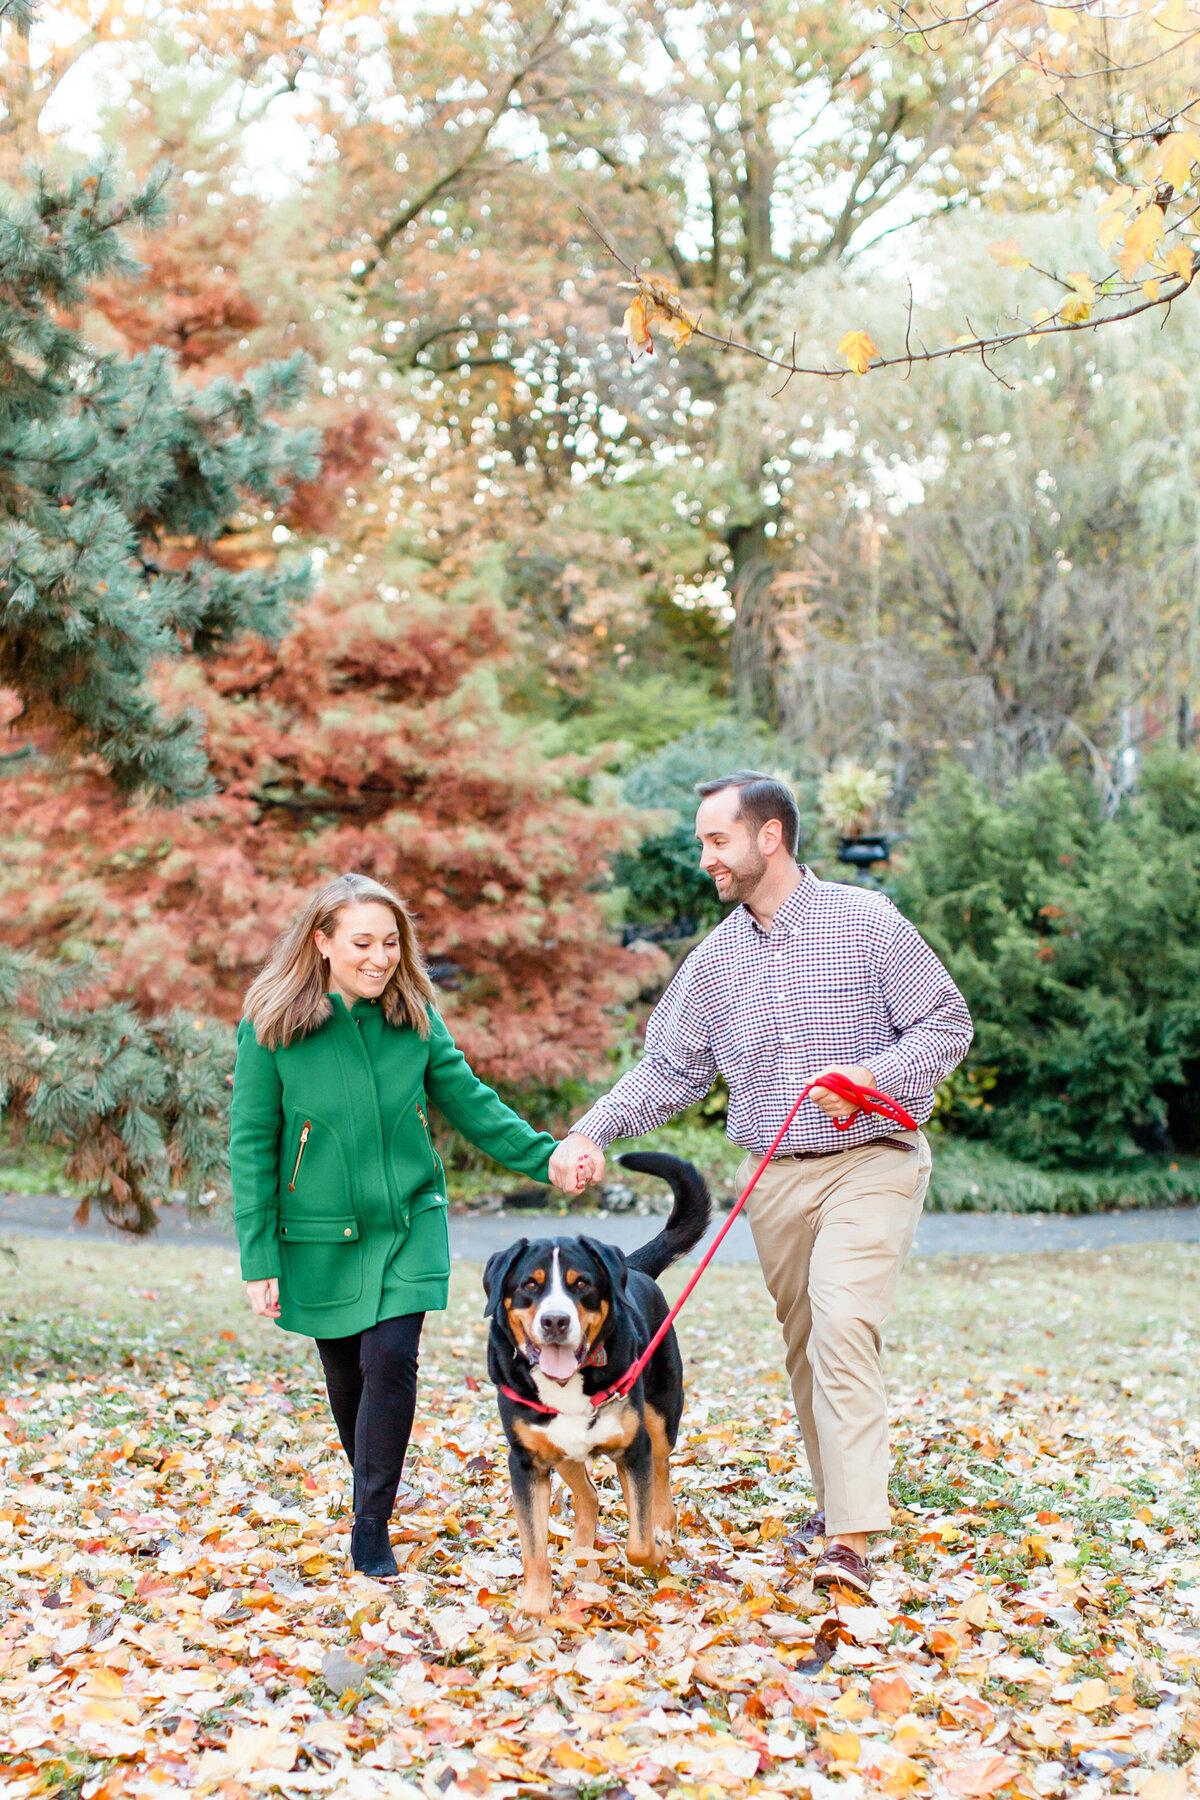 Winter Engagement  Session with green coat  couple walking dog in Fall leaves  at Lafayette Park in St. Louis by Amy Britton Photography Photographer in St. Louis